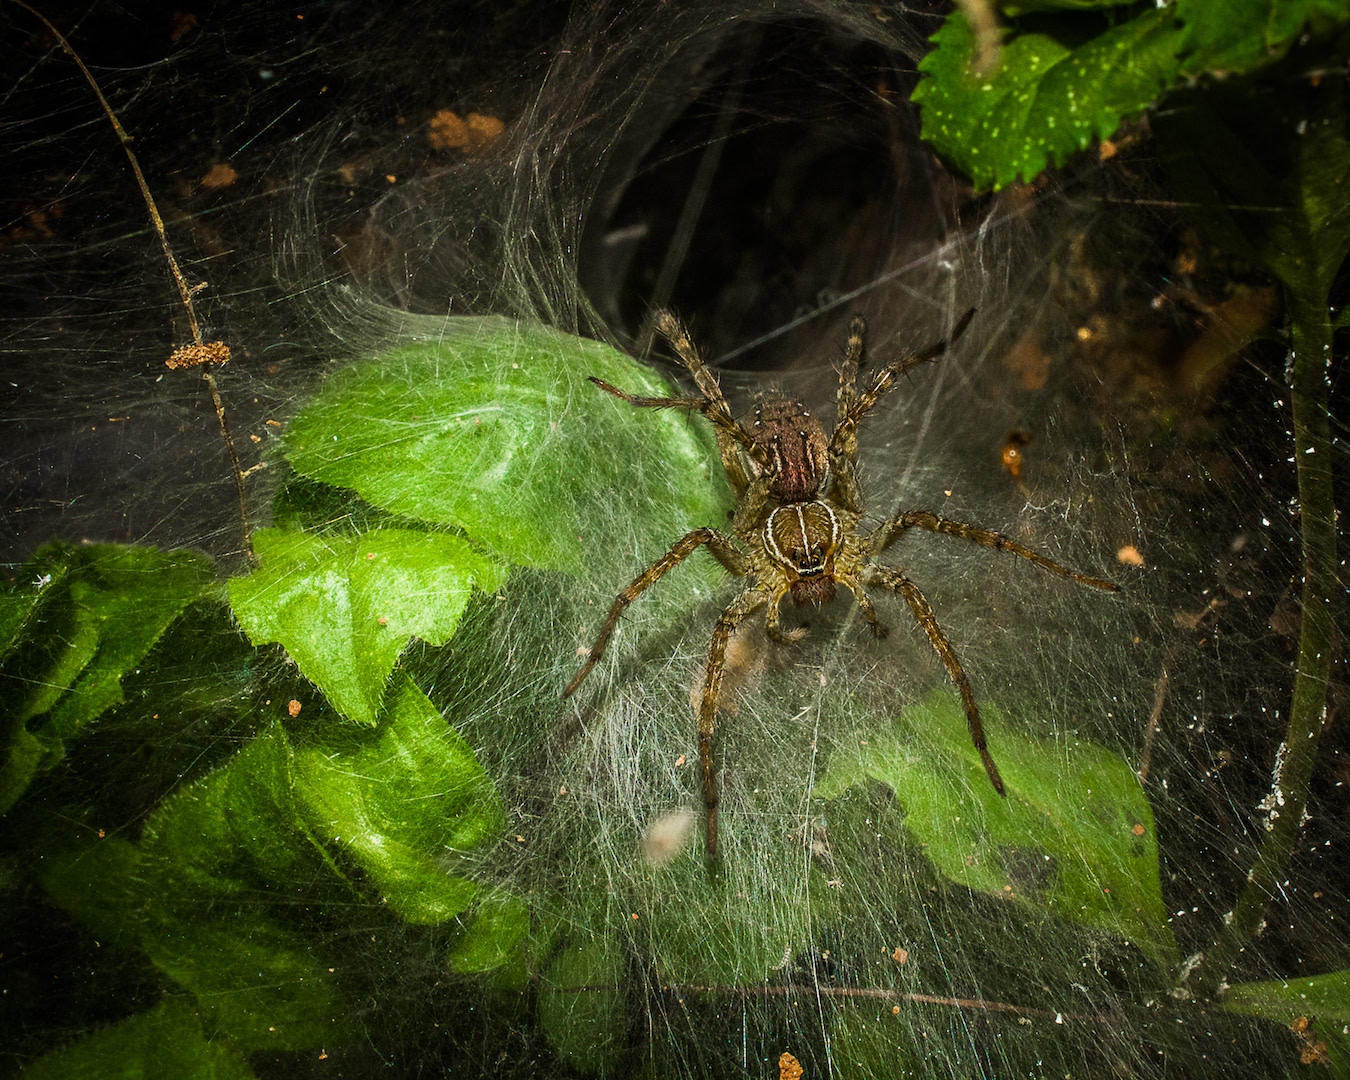 A funnel-web spider sits outside its web waiting for its next meal, of an insect or snail, to walk by.  Cover: Seen in the early hours of the morning, this male net-casting spider has swollen pedipalps, the second pair of appendages which function as a sensory organ of touch in spiders.